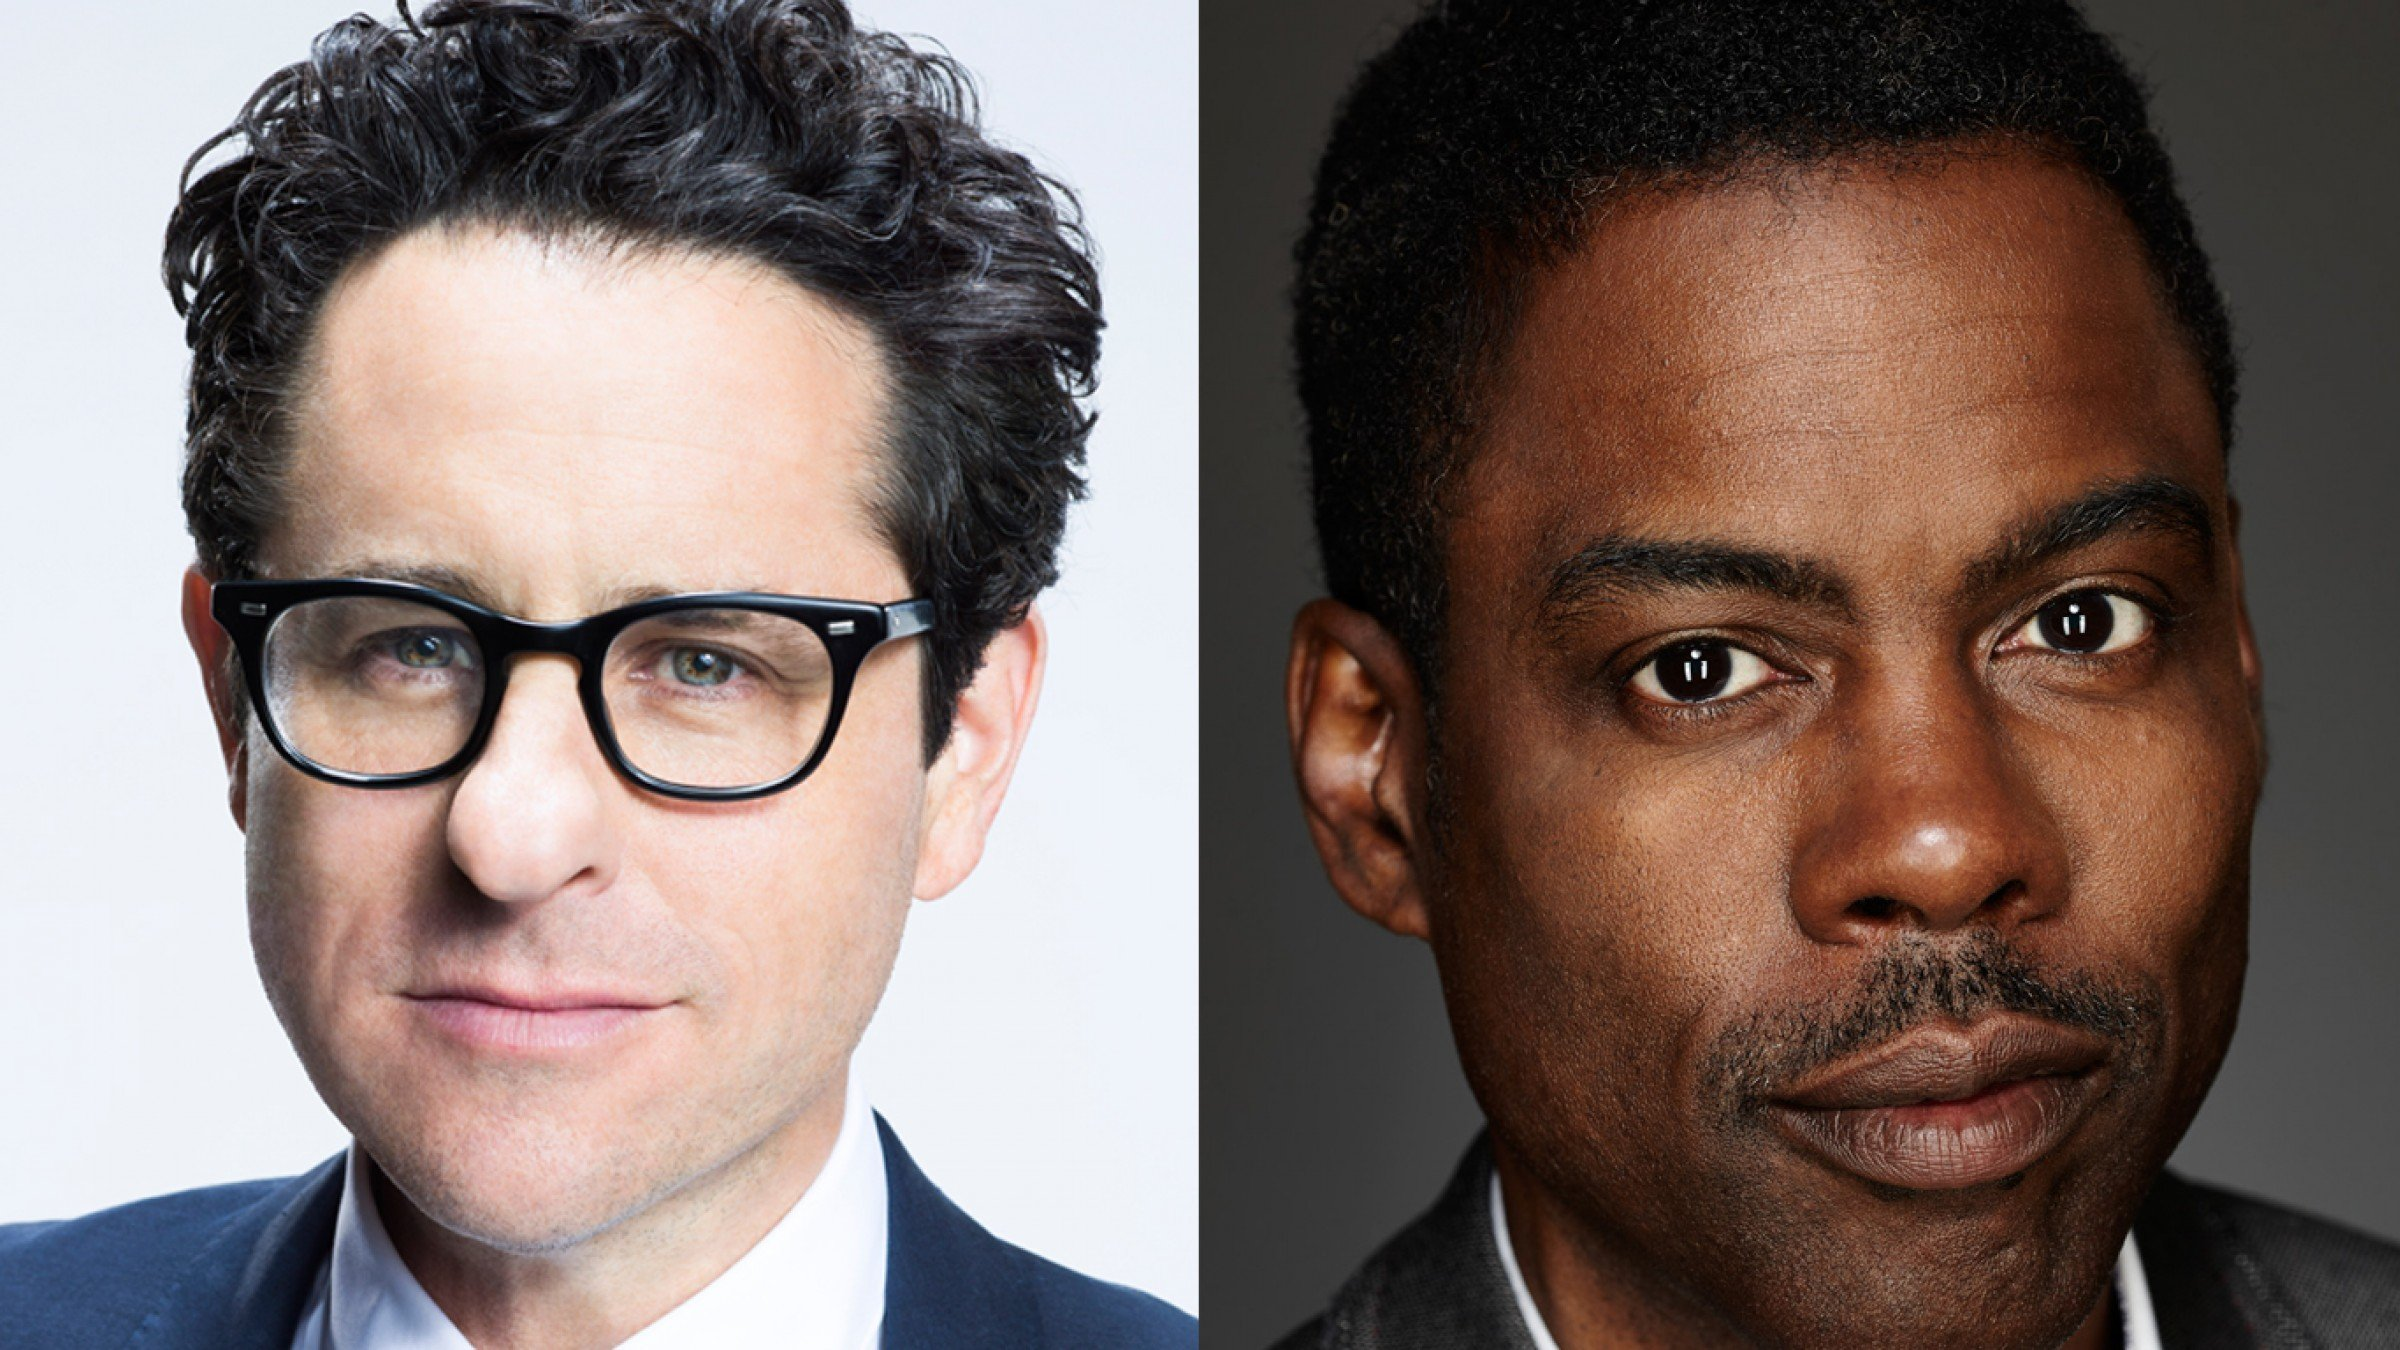 7 Reasons To Listen to JJ Abrams, Quit Your Boring Job and Make Your Passion Project